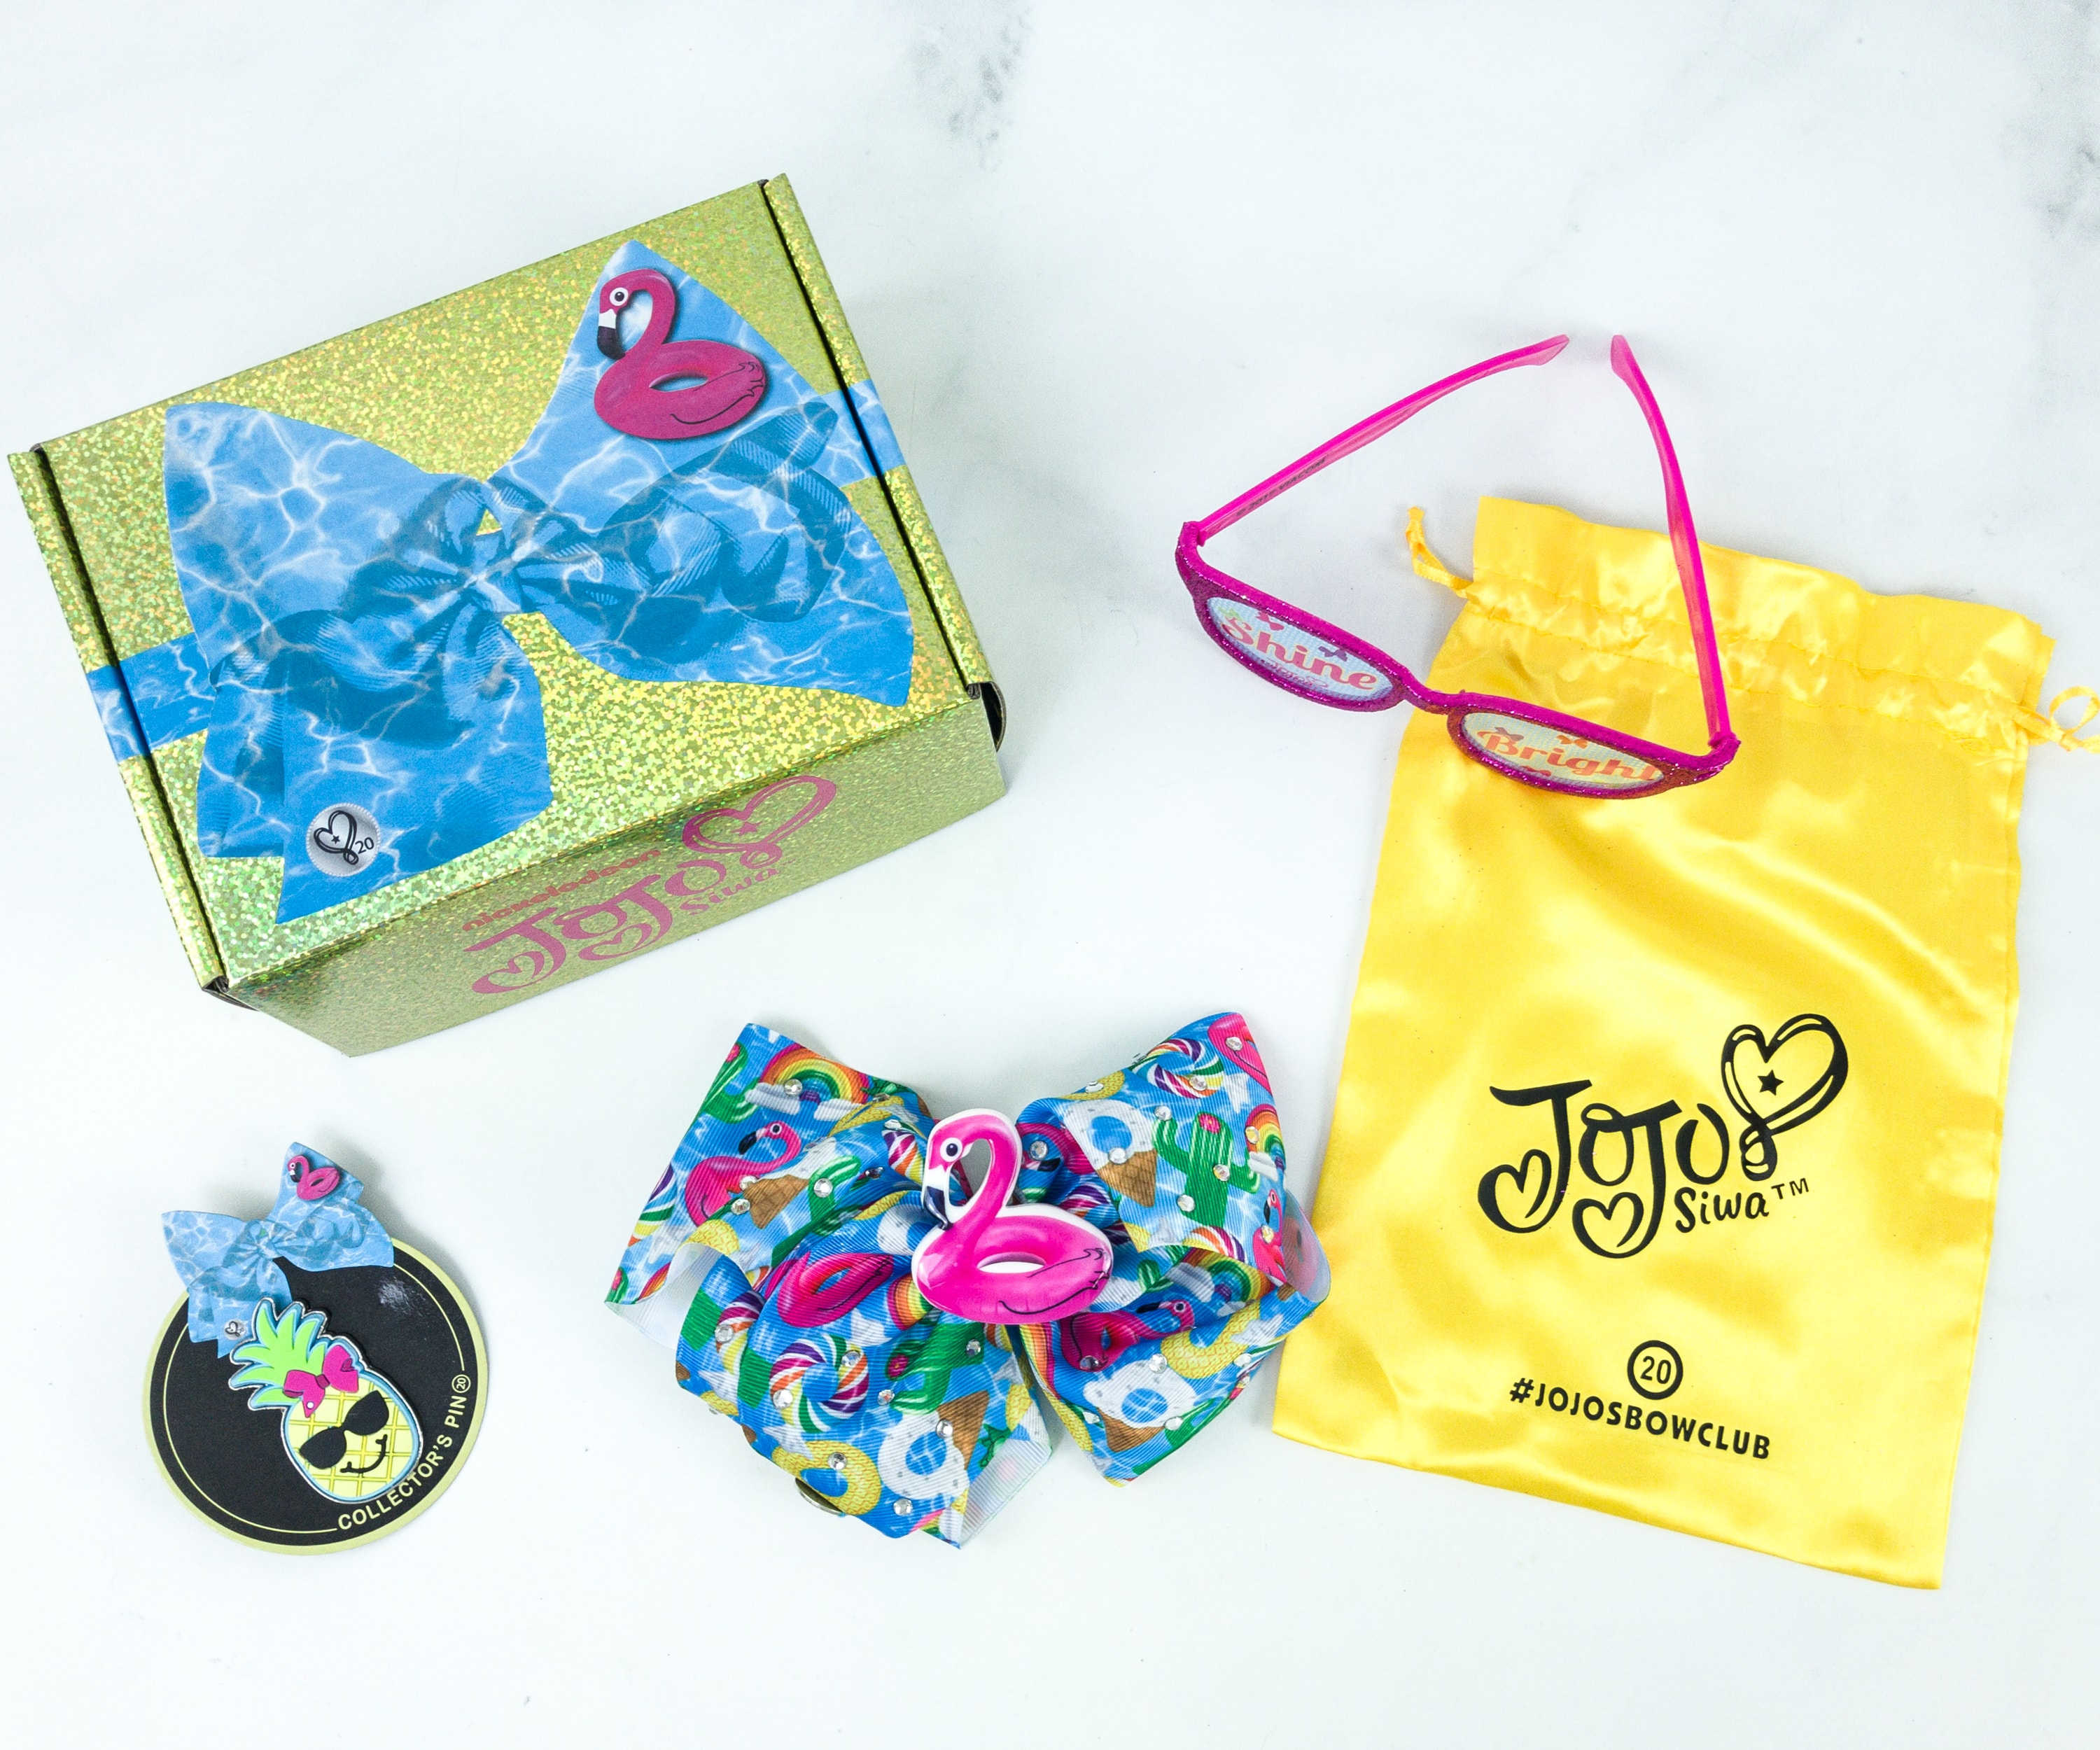 JoJo's Bow Club June 2019 Subscription Box Review + Coupon